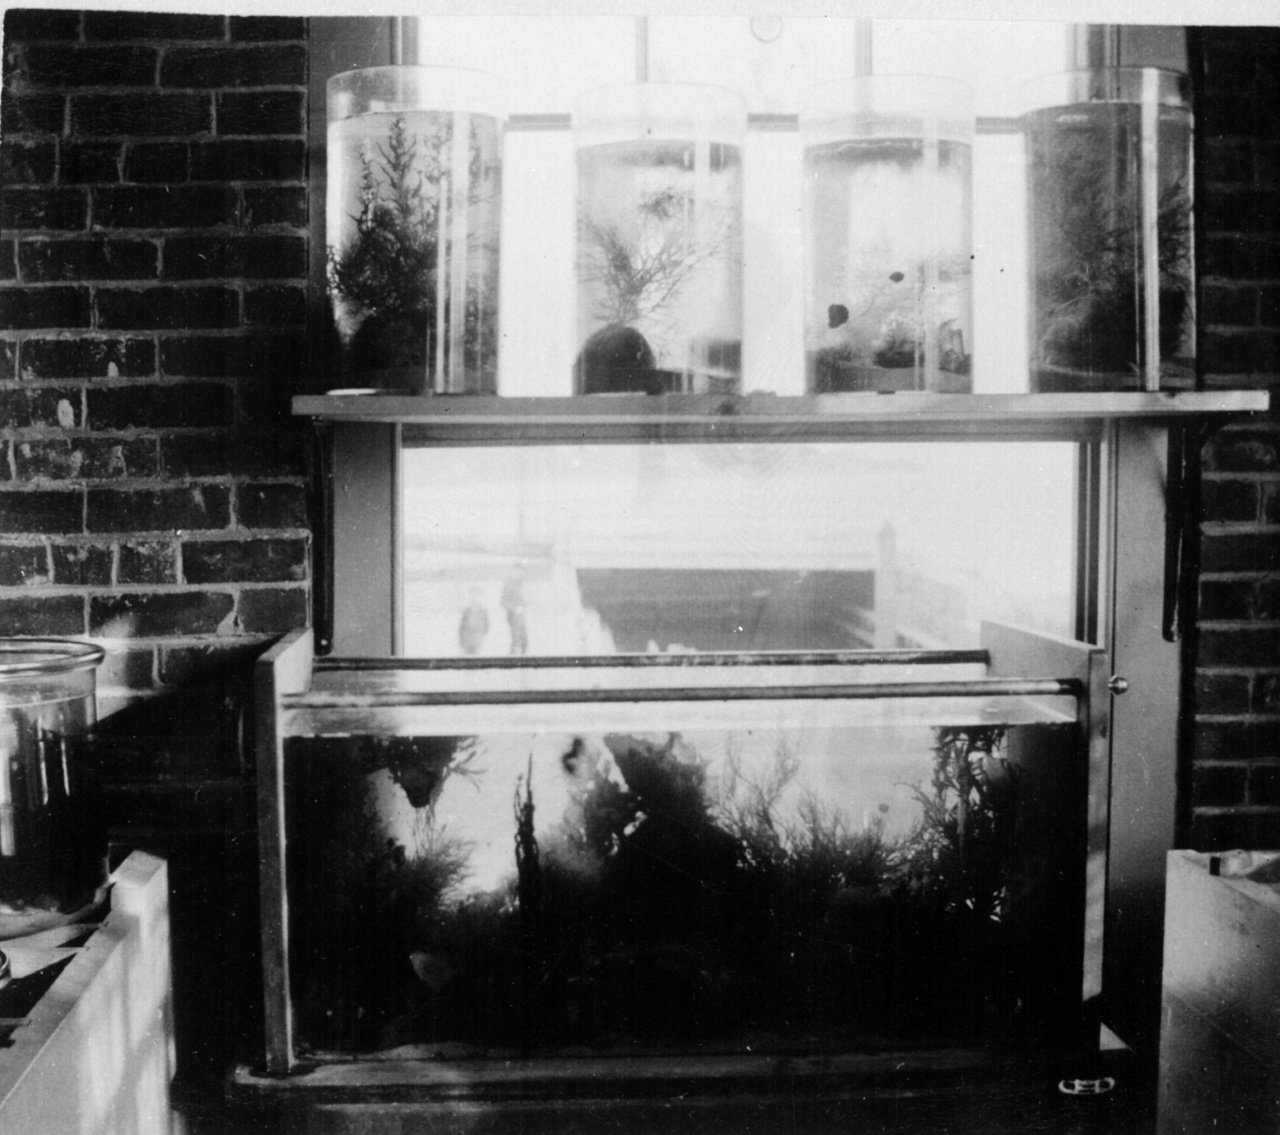 Black and white photo of McDonald Jar aquaria on shelf in front of window and square aquaria on floor beneath them.